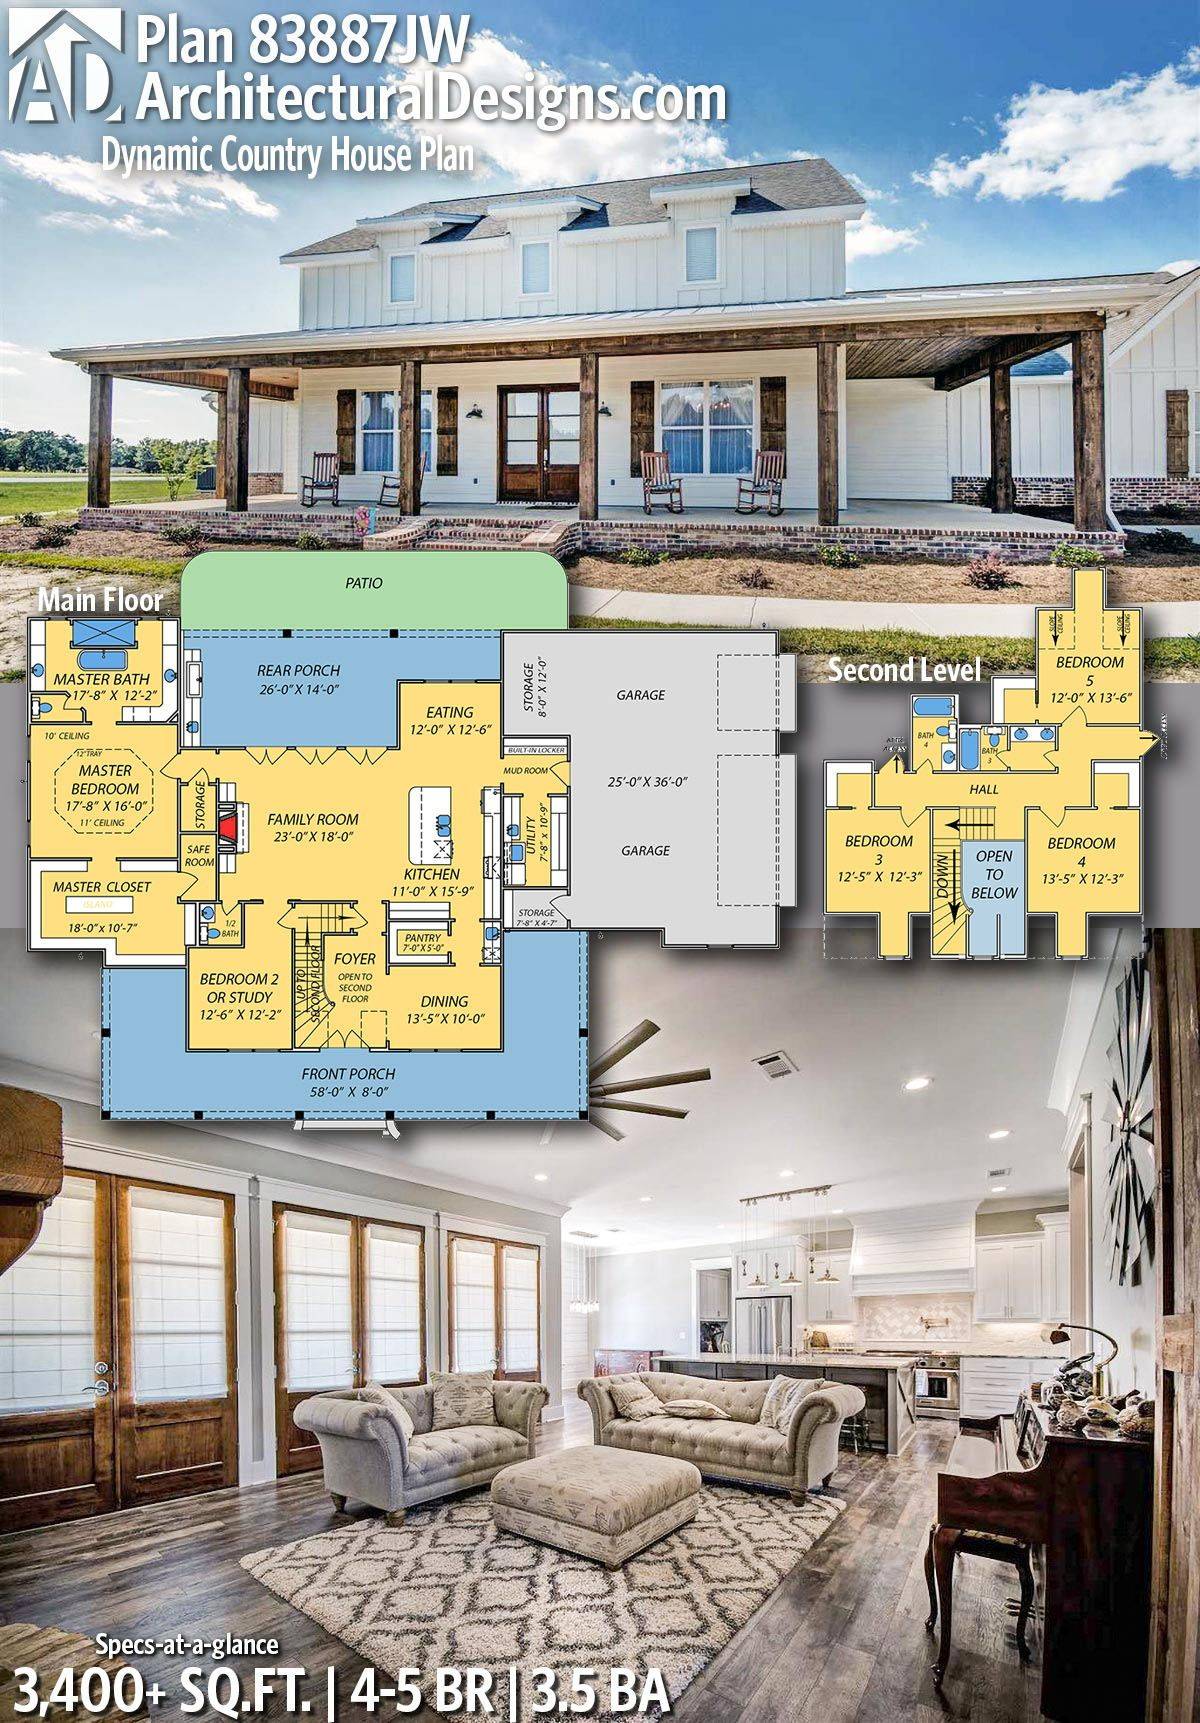 Plan 83887JW: Dynamic Country House Plan with Safe Room